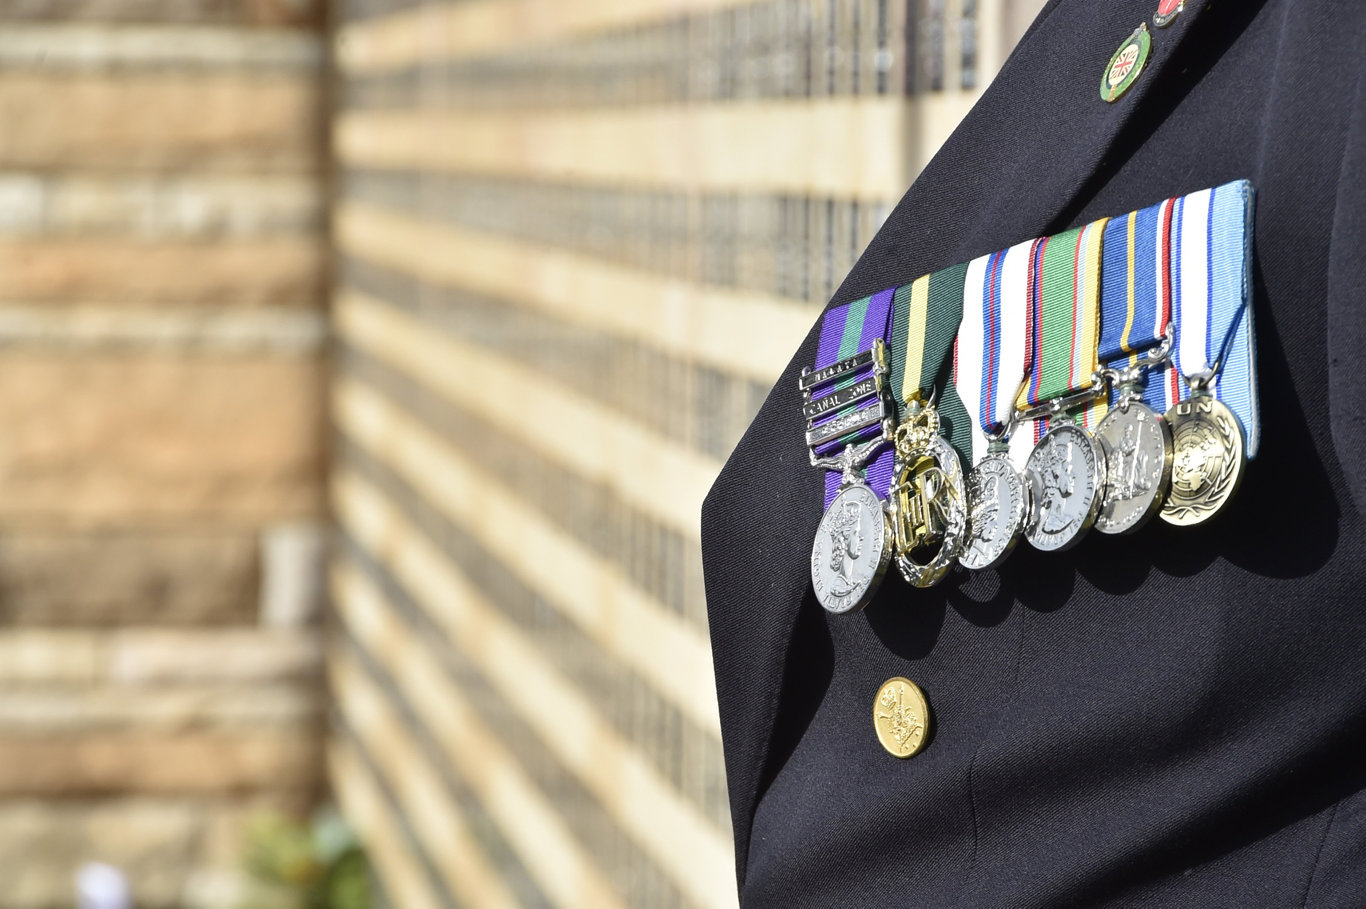 Remember those who made the ultimate sacrifice, this Anzac Day.